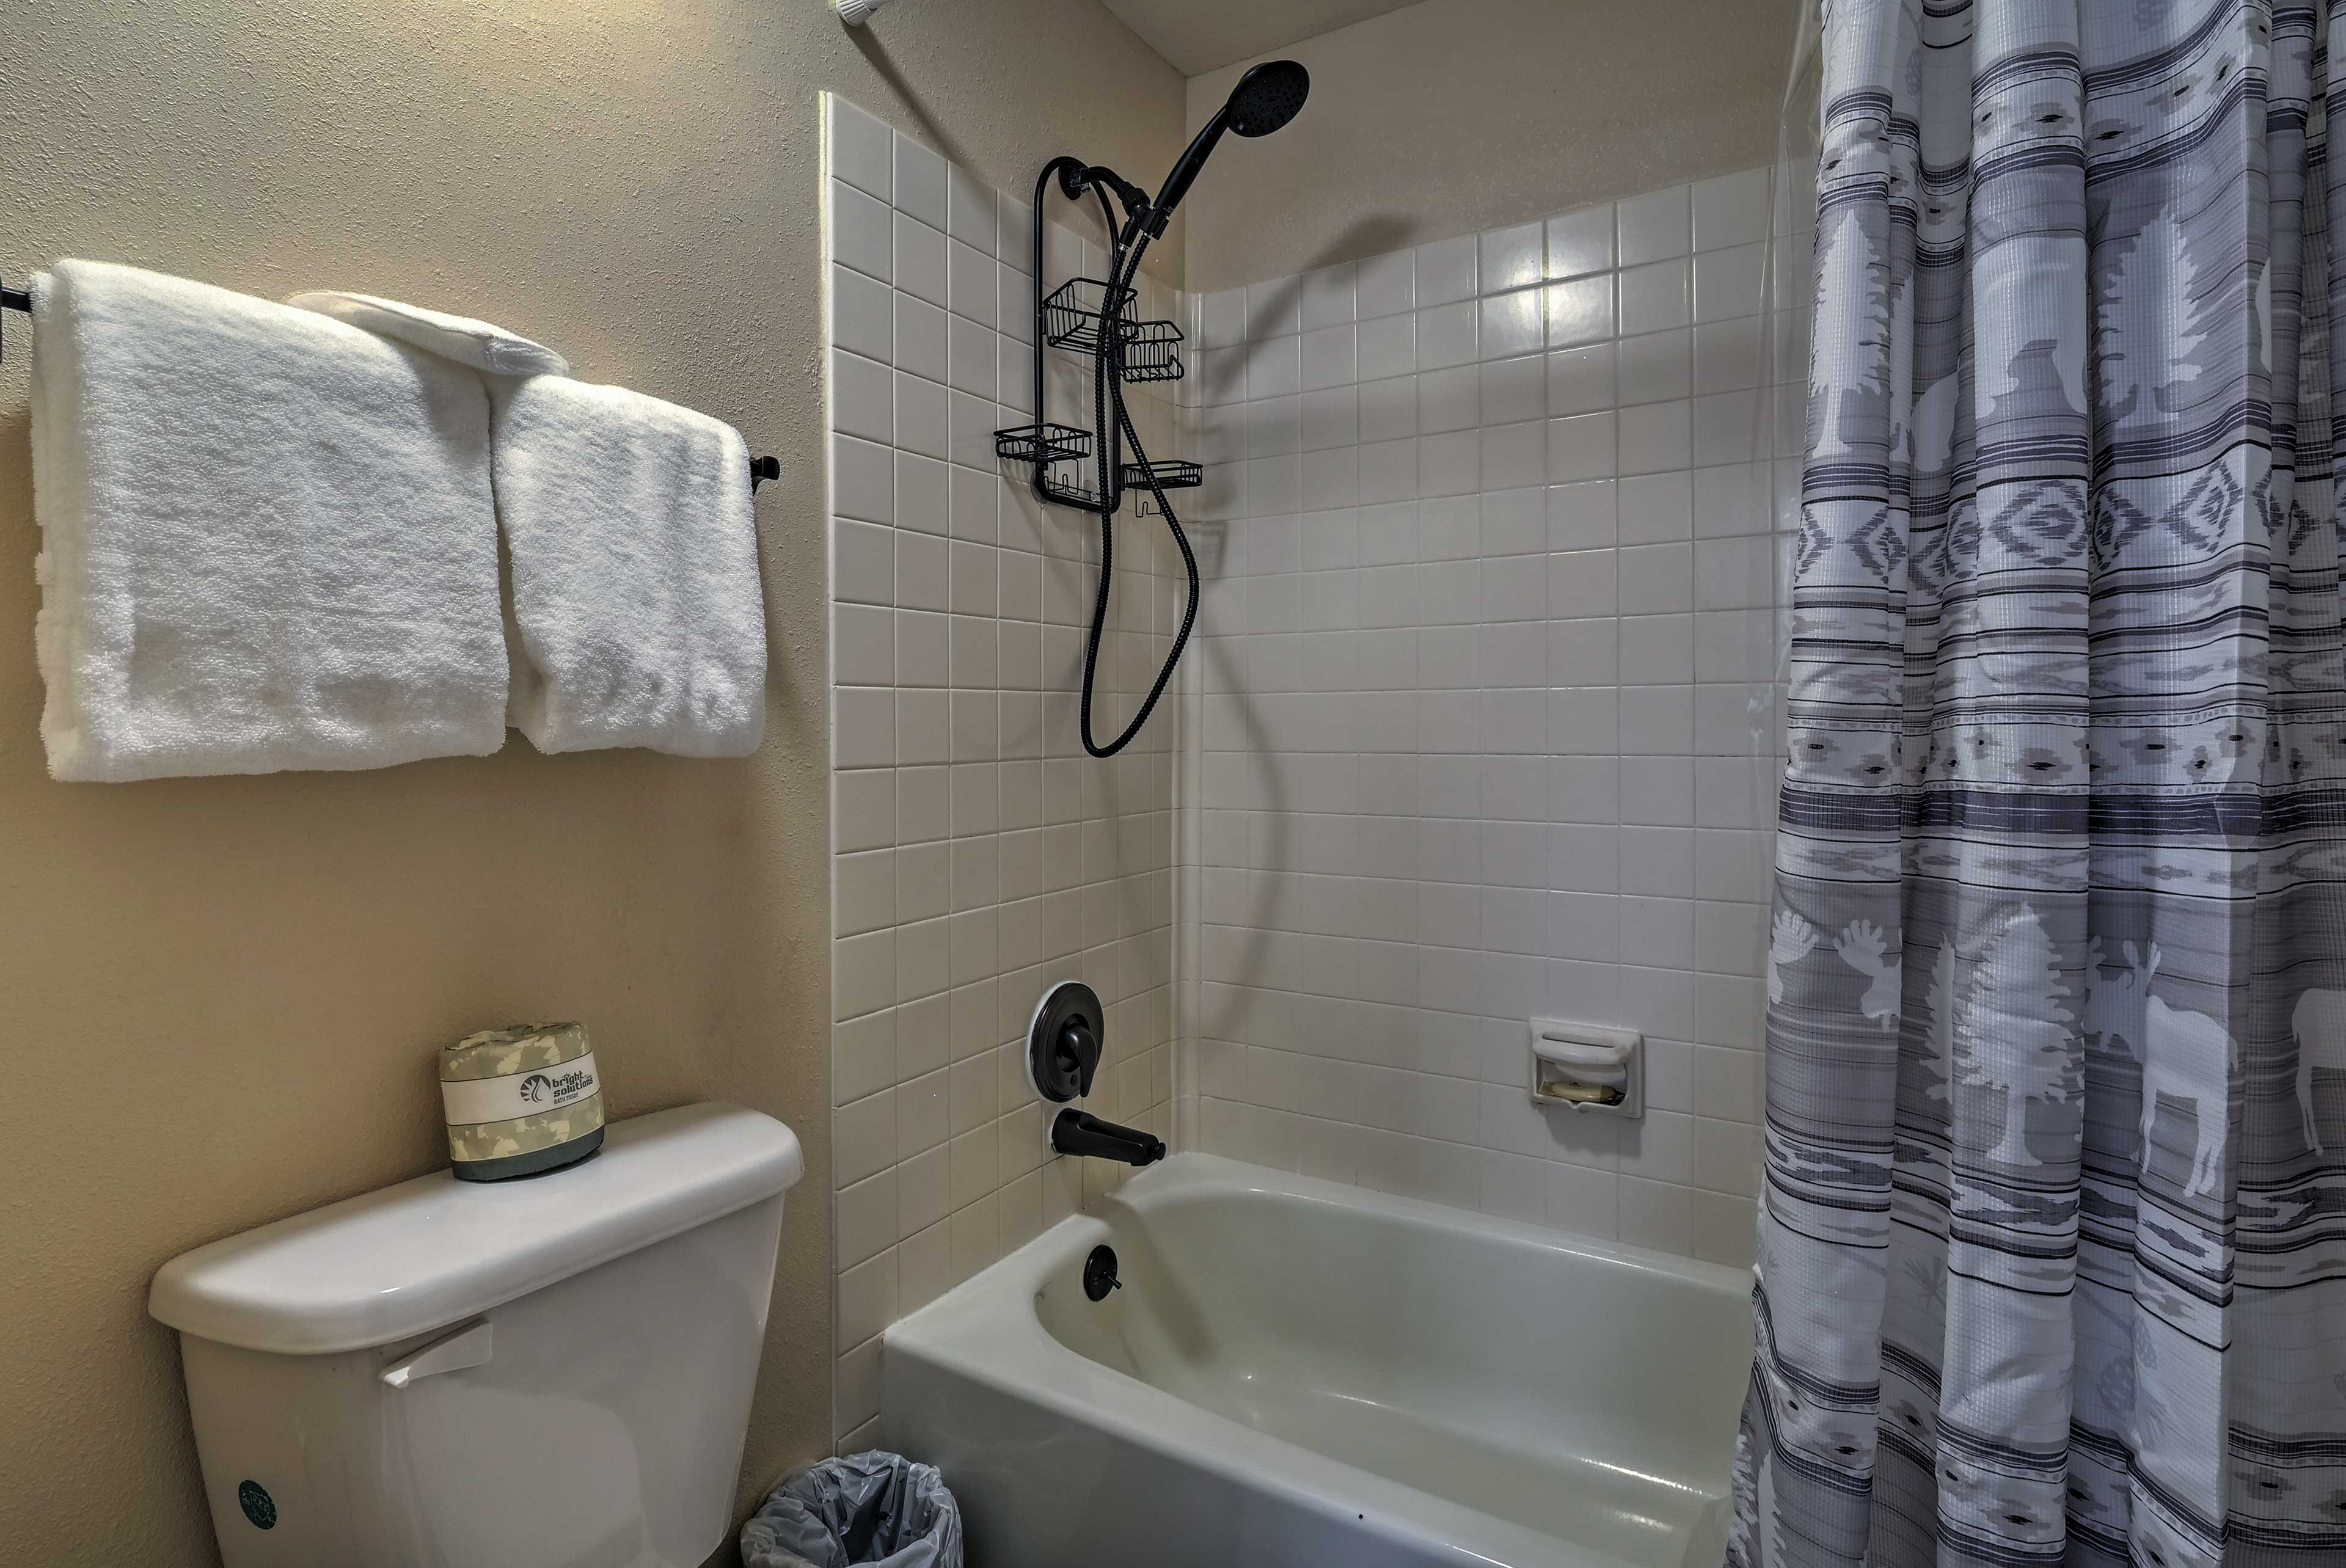 Rinse off in the shower/tub combo.